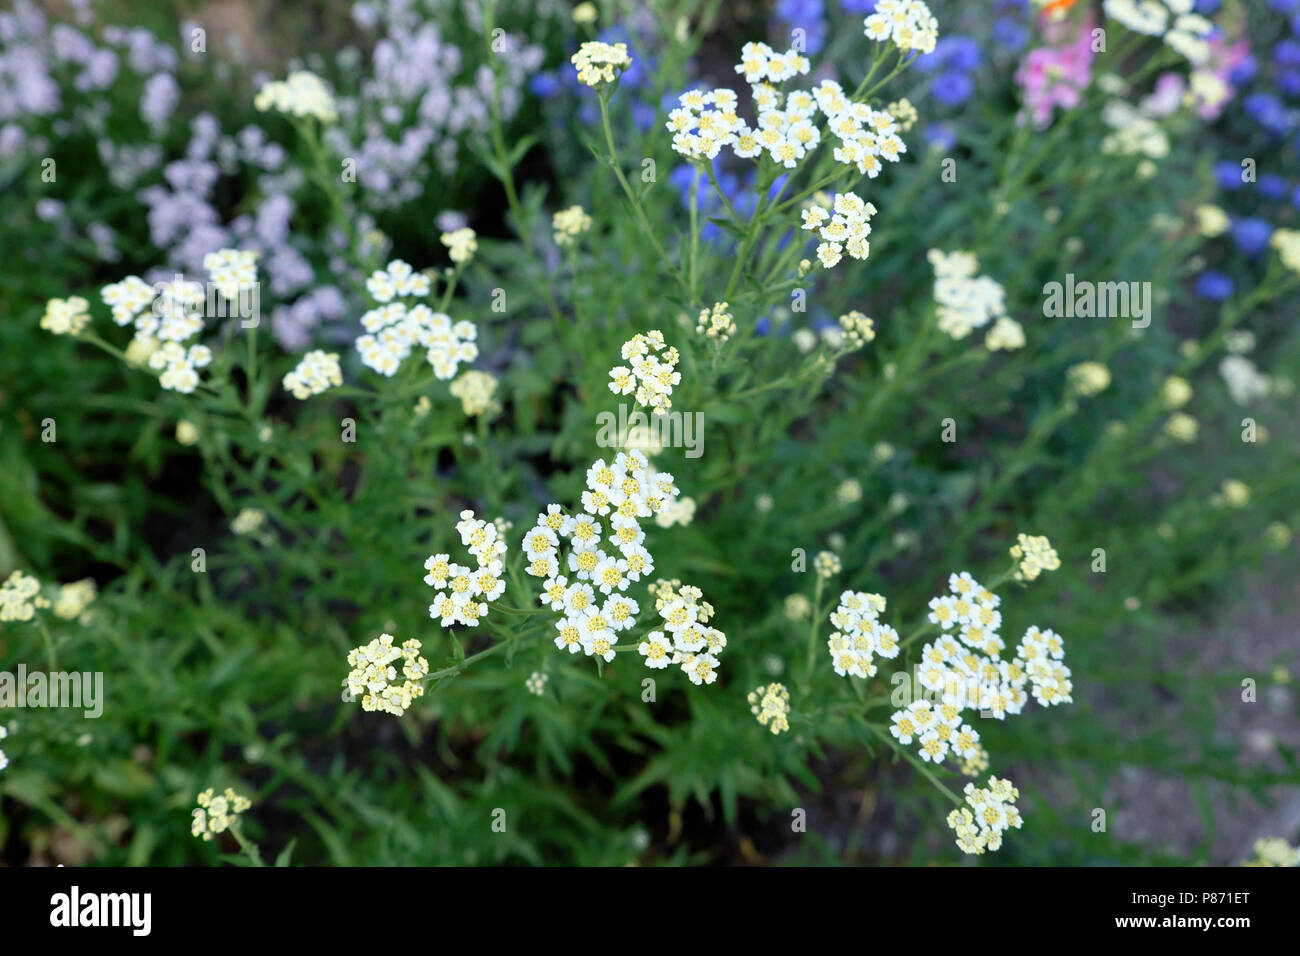 English mace edible herb Achillea ageratum growing with